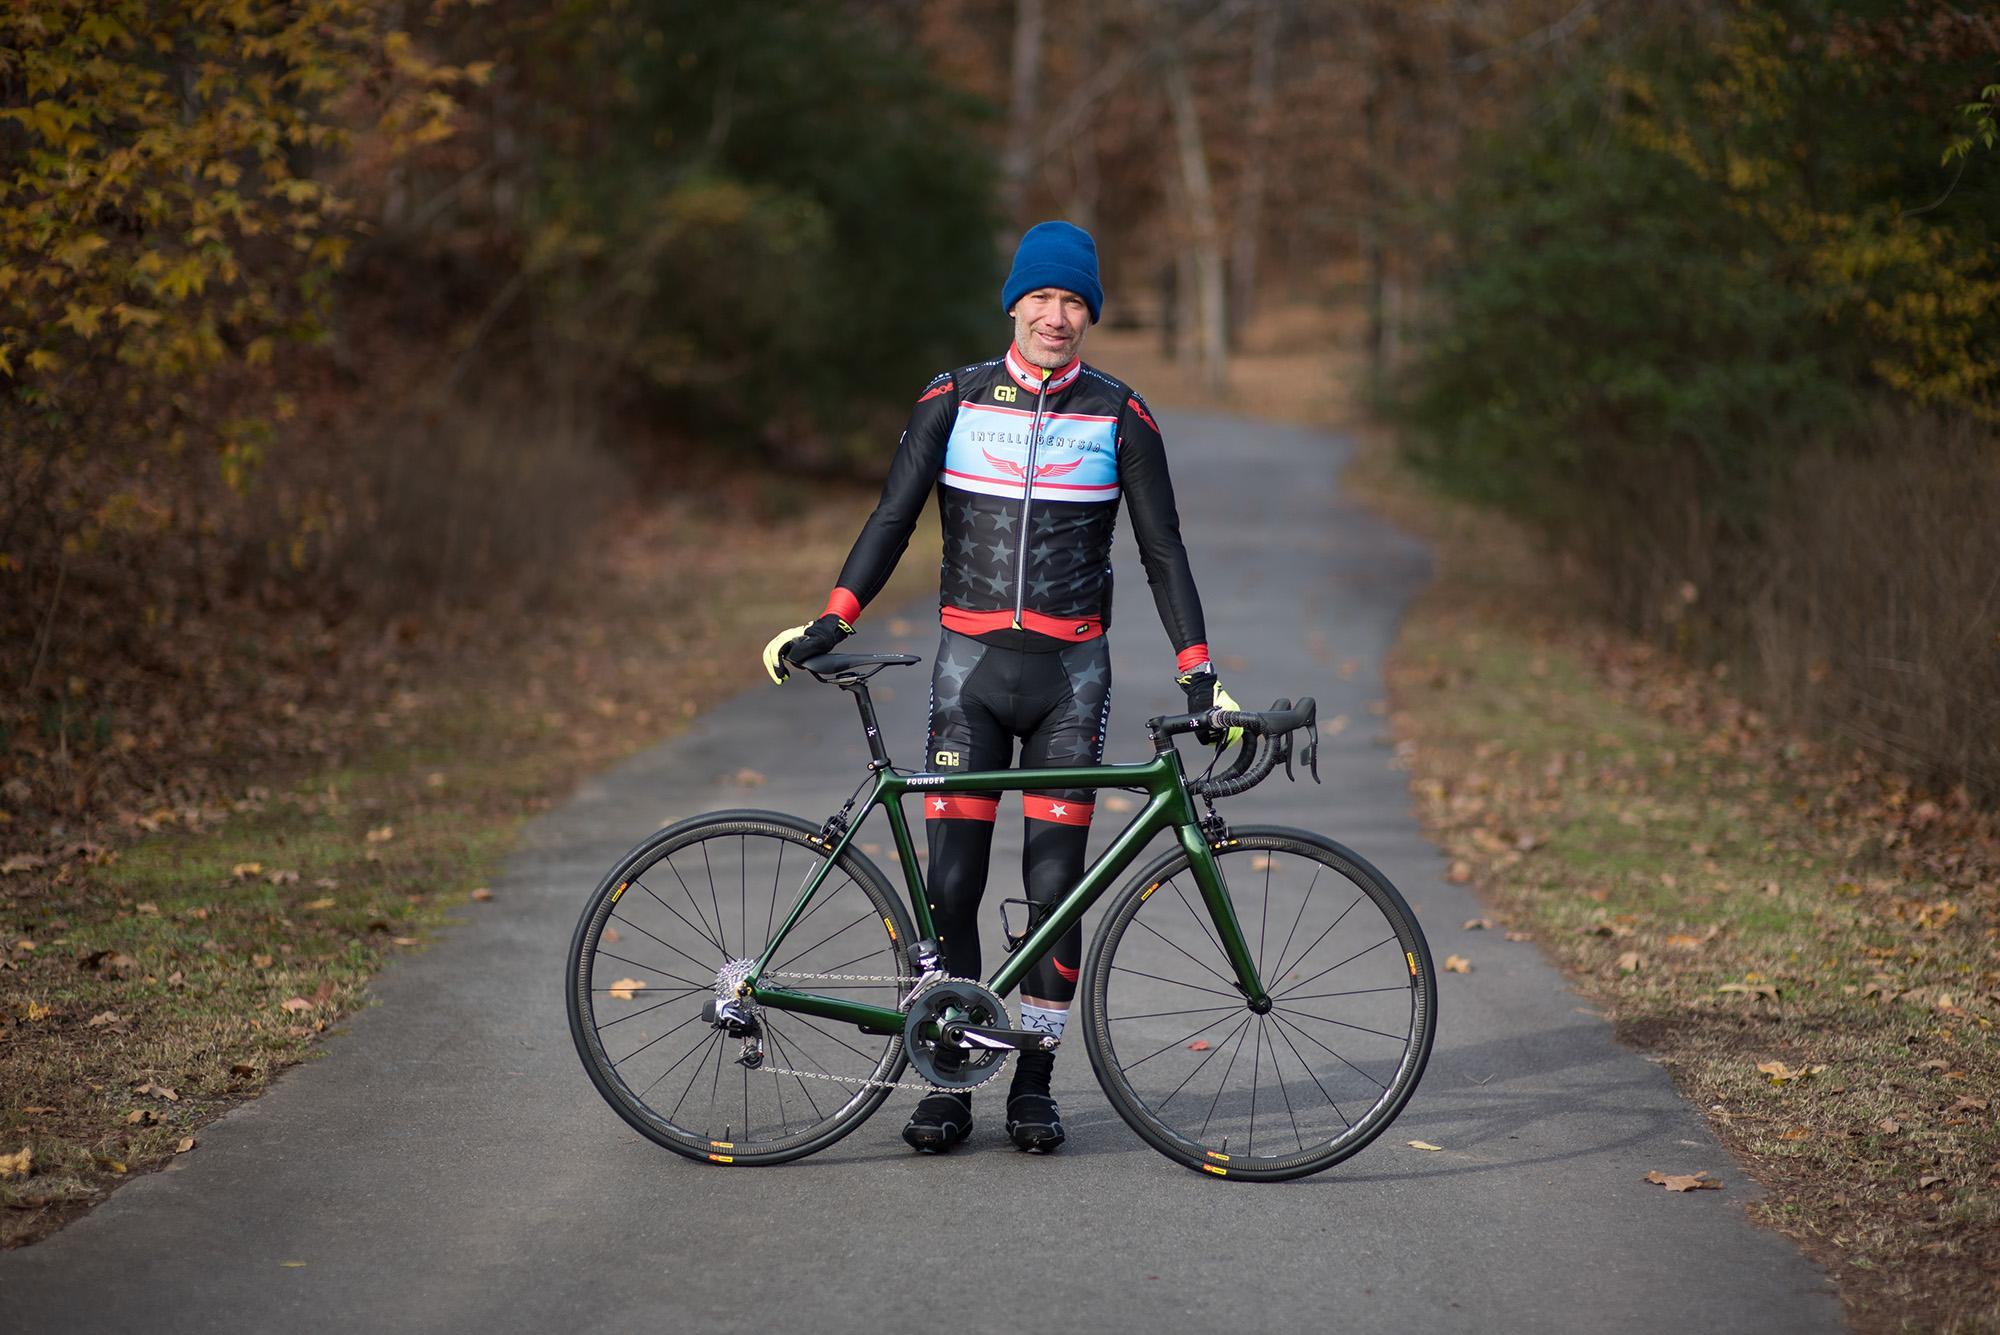 The HIA Velo Co-Founder's Personal Founder Road